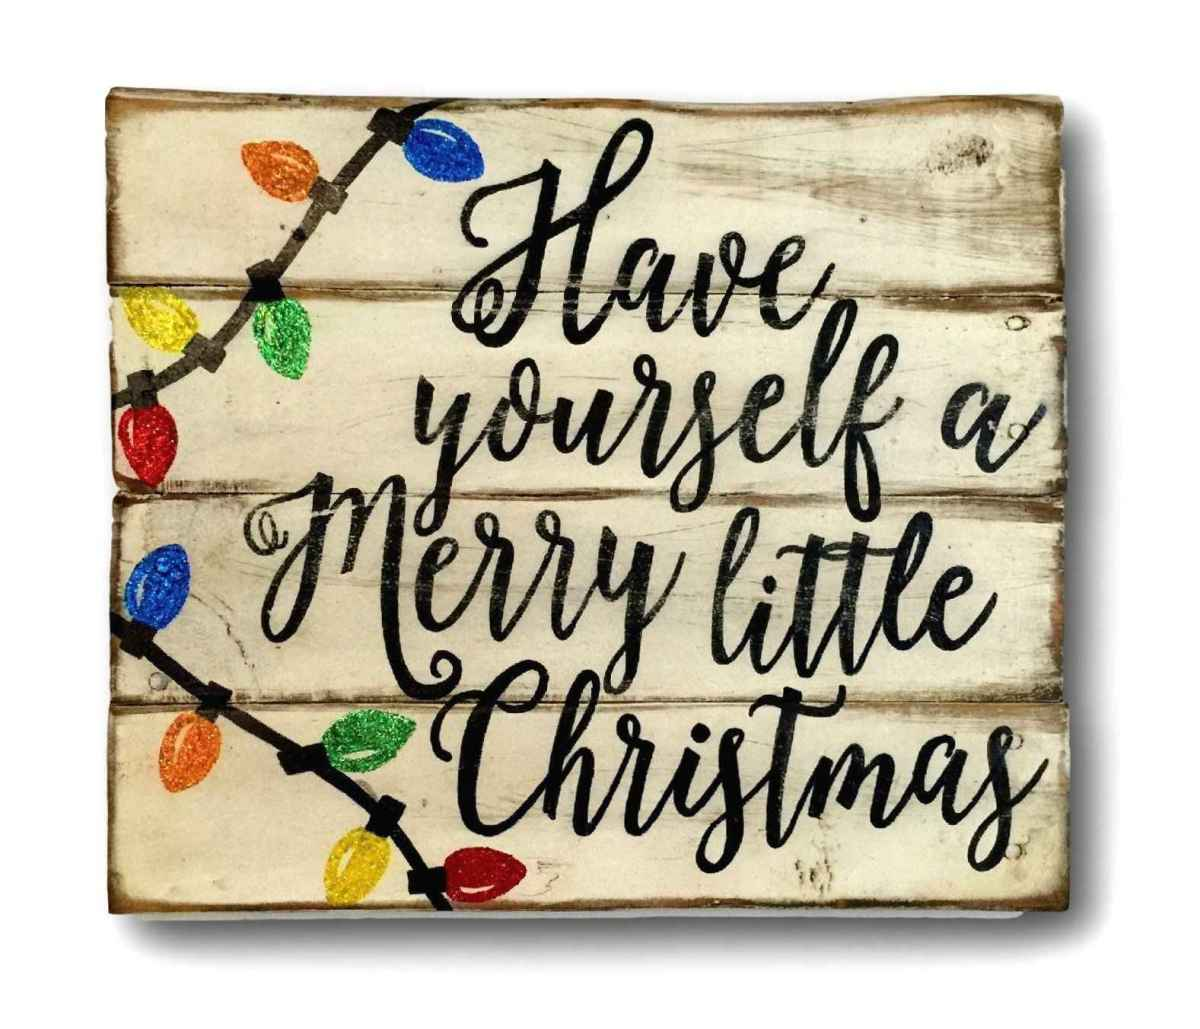 Creative christmas signs and saying ideas 0004